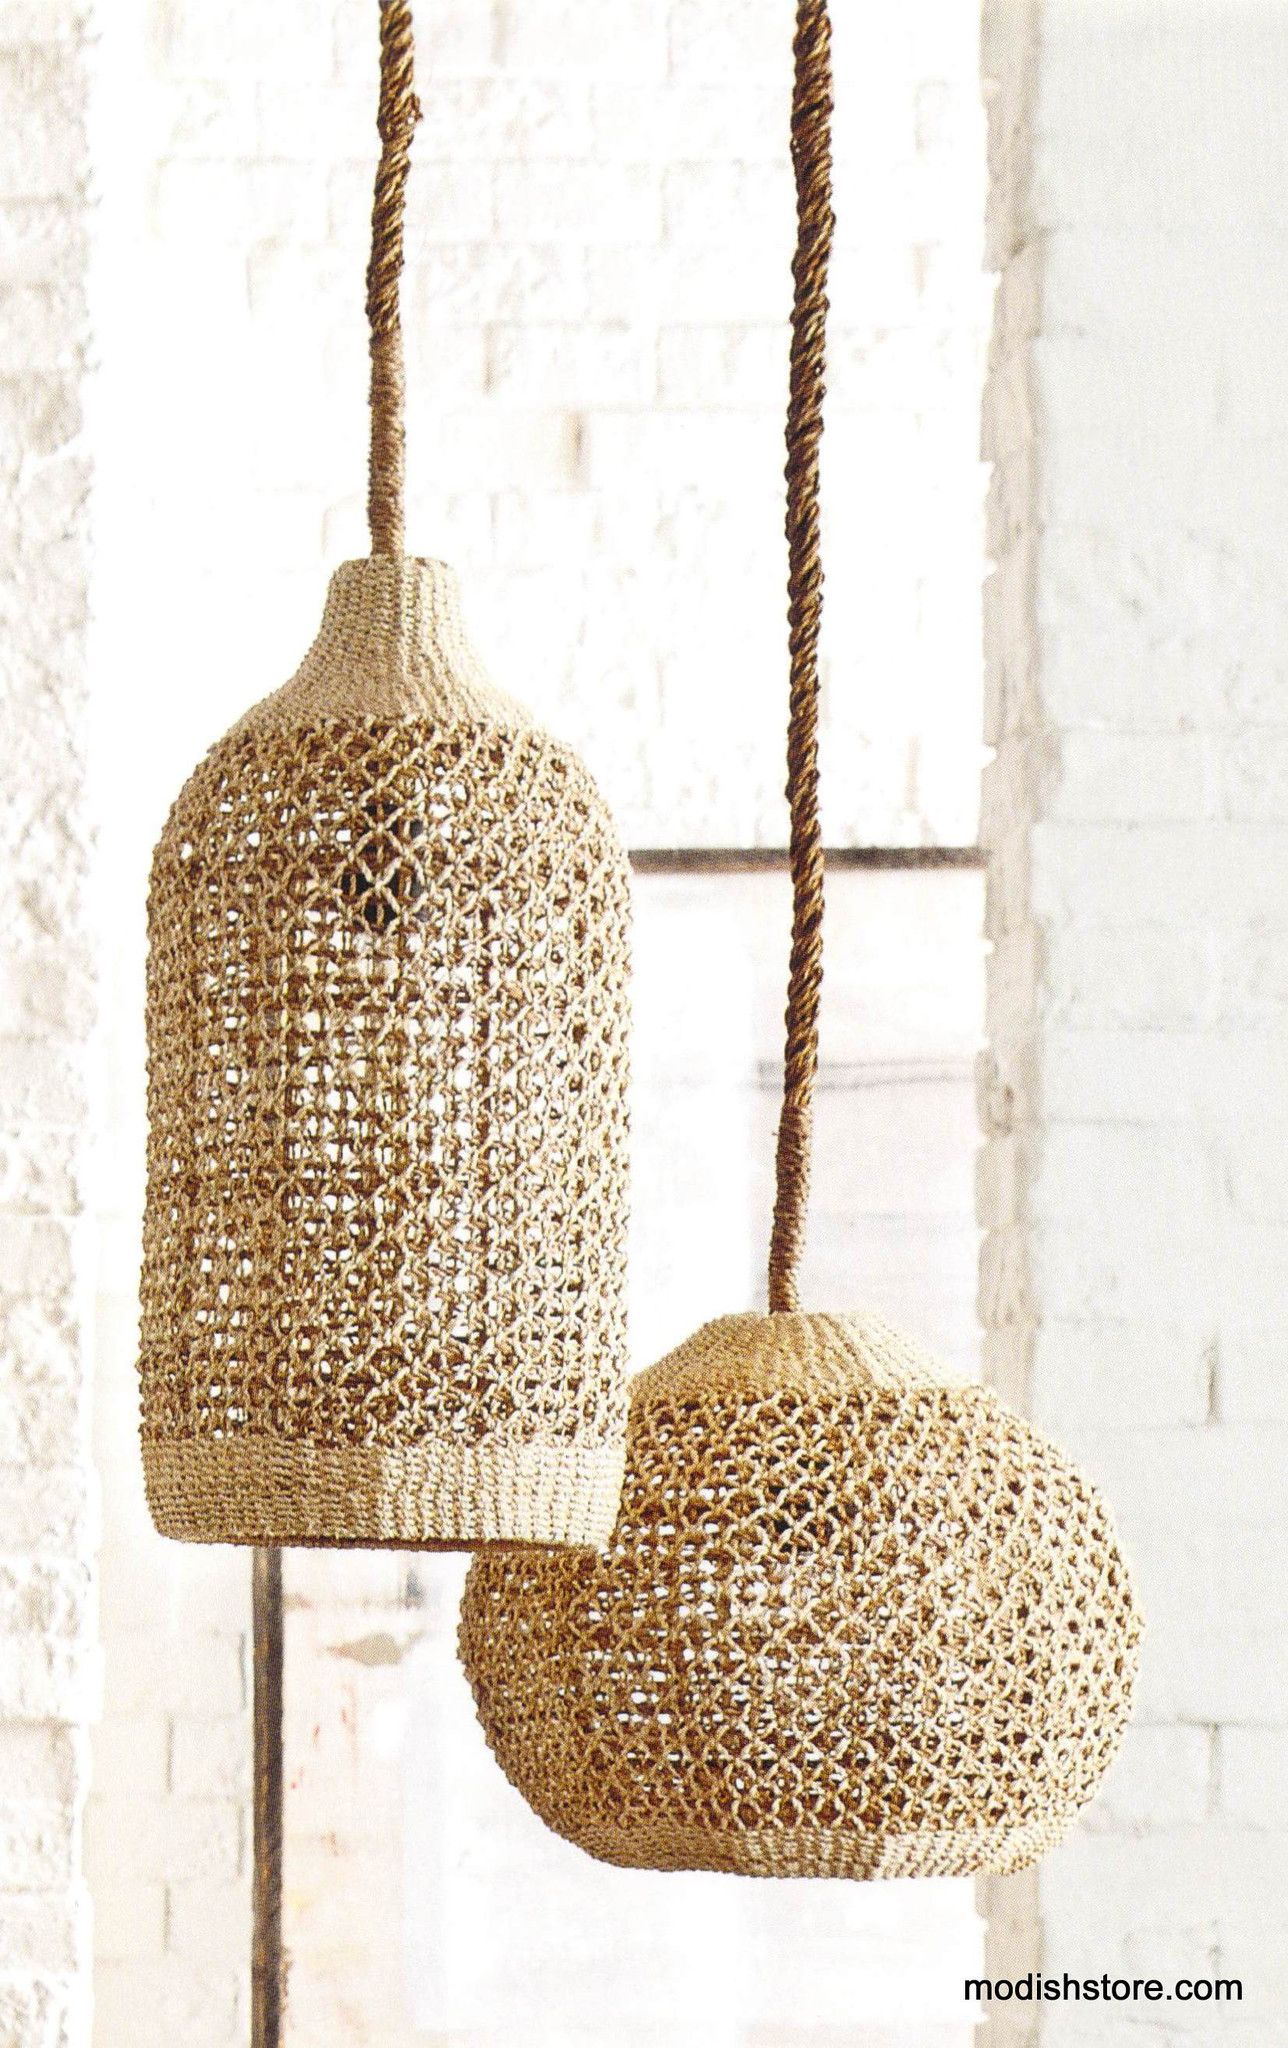 Roost Basket Cloche Lamp Pendant Lamps Modish More Www